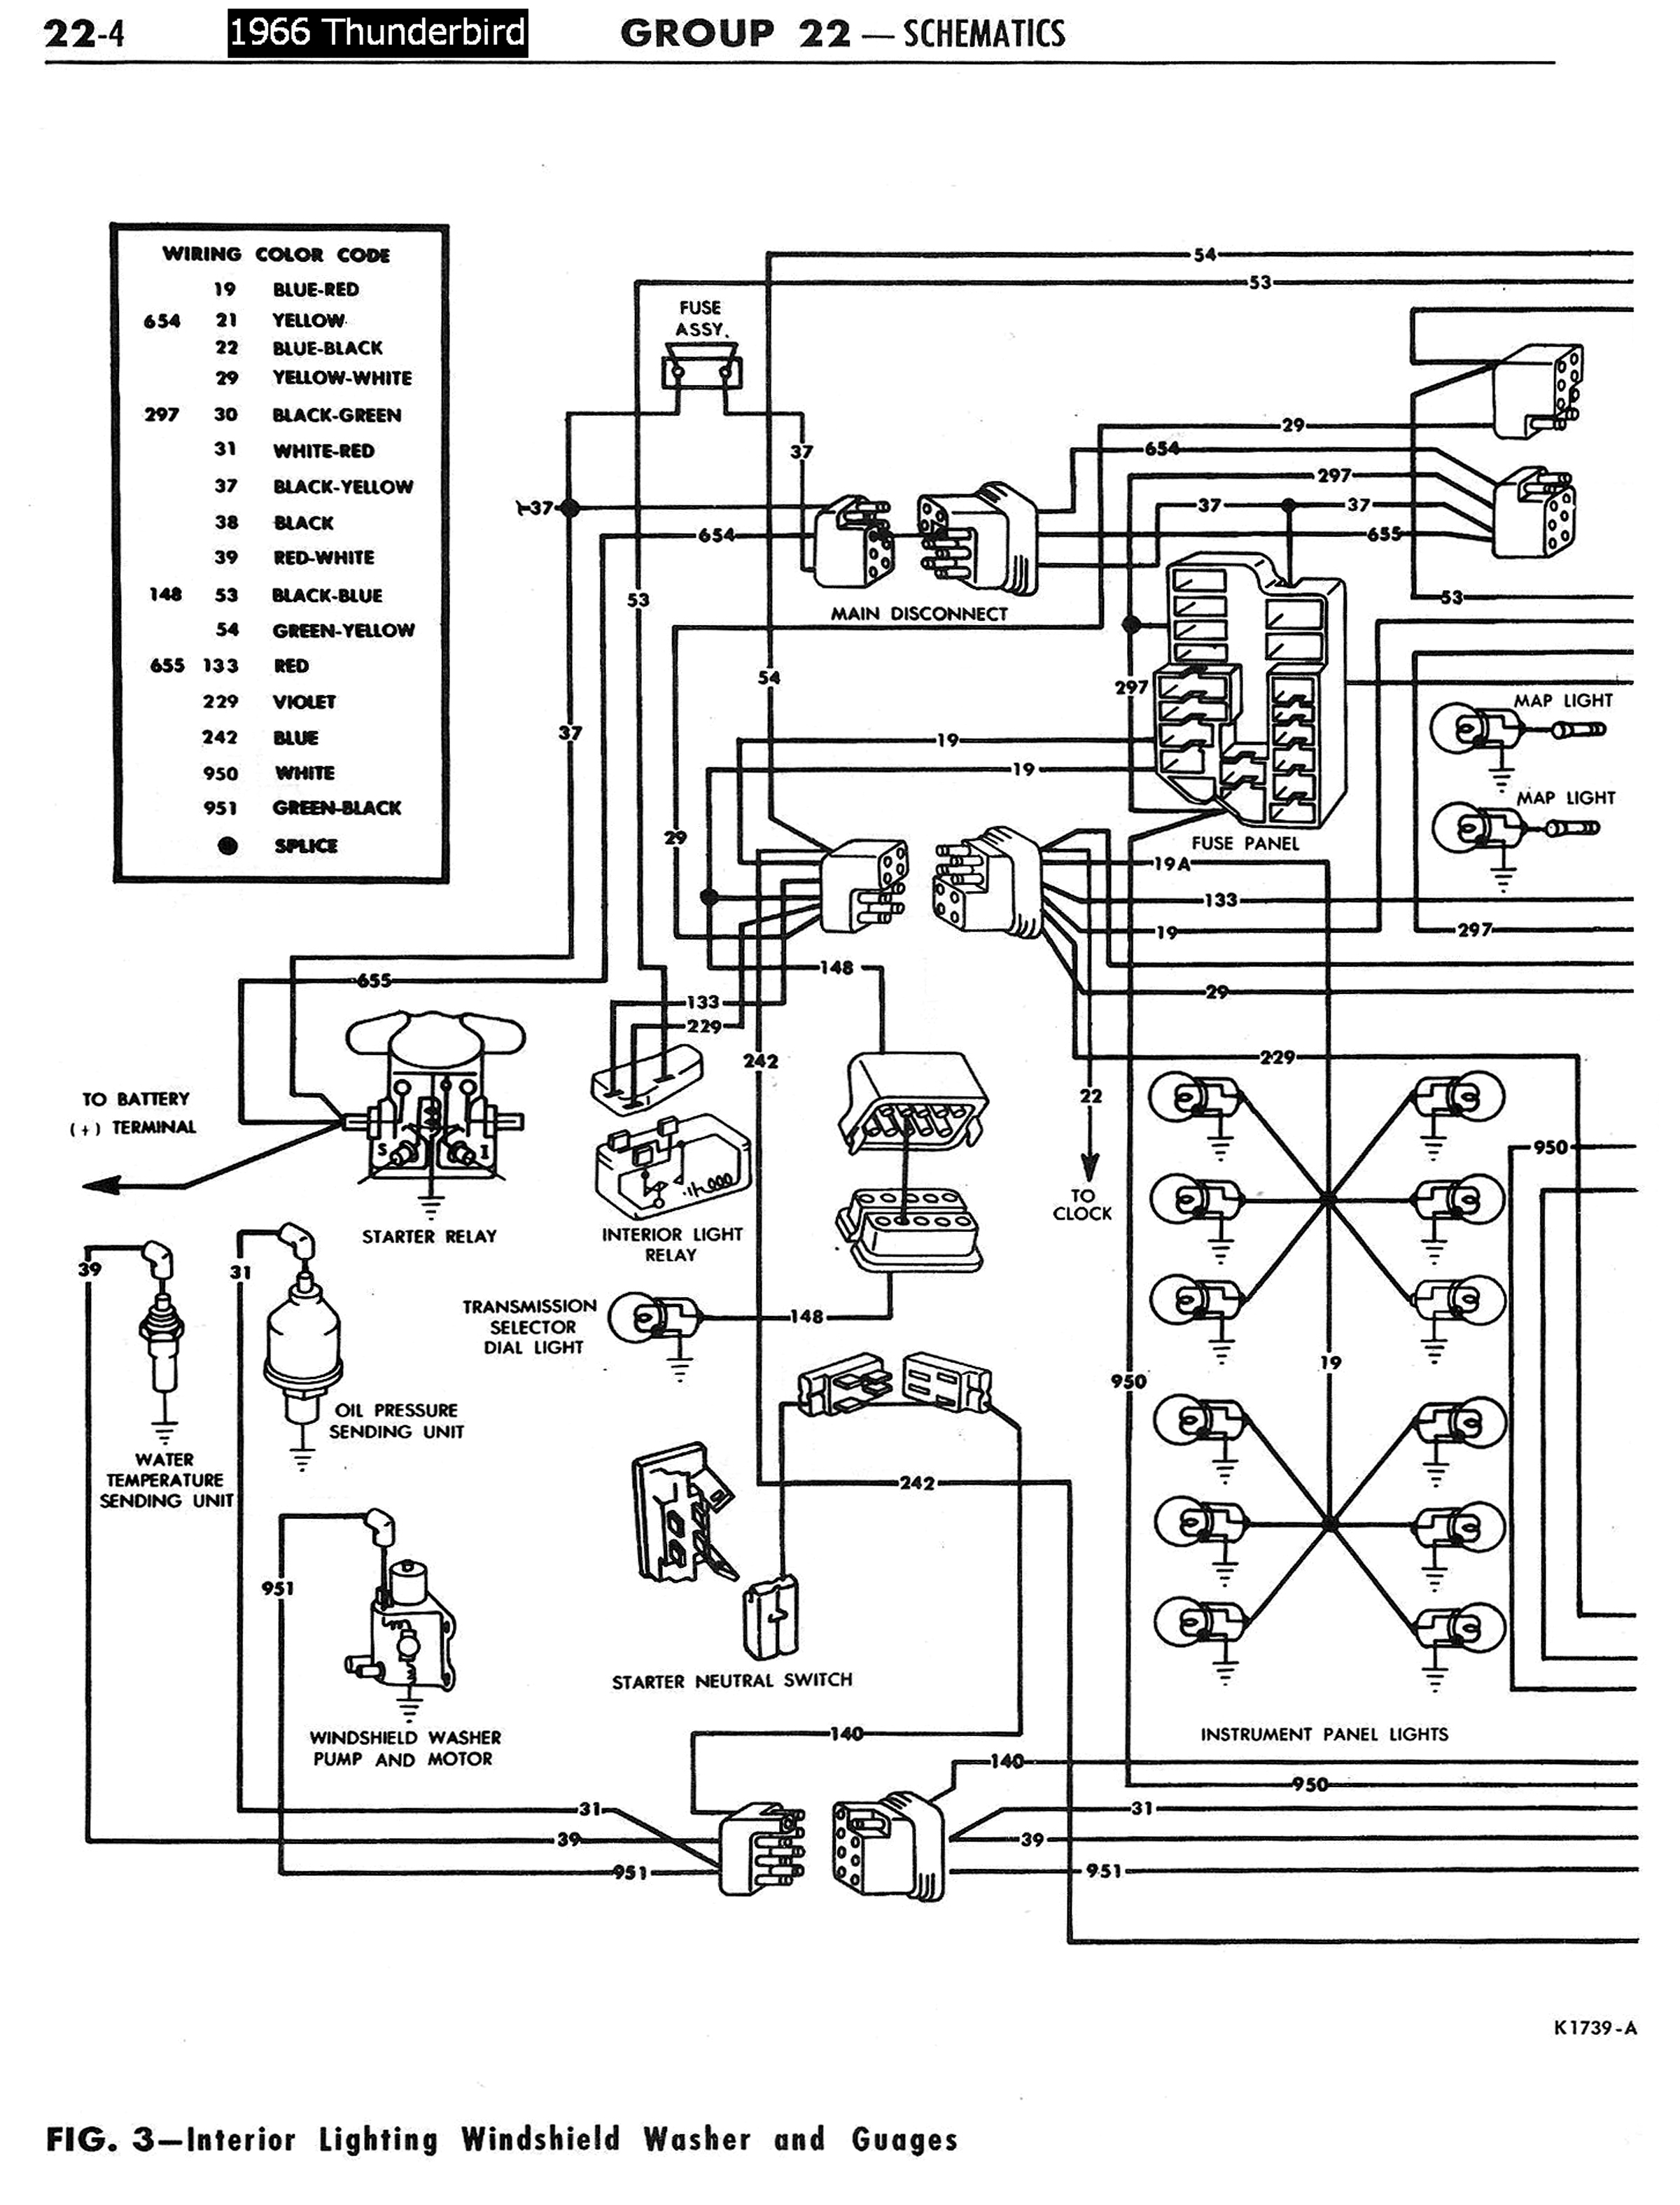 Wiring Diagram For A Ford Thunderbird